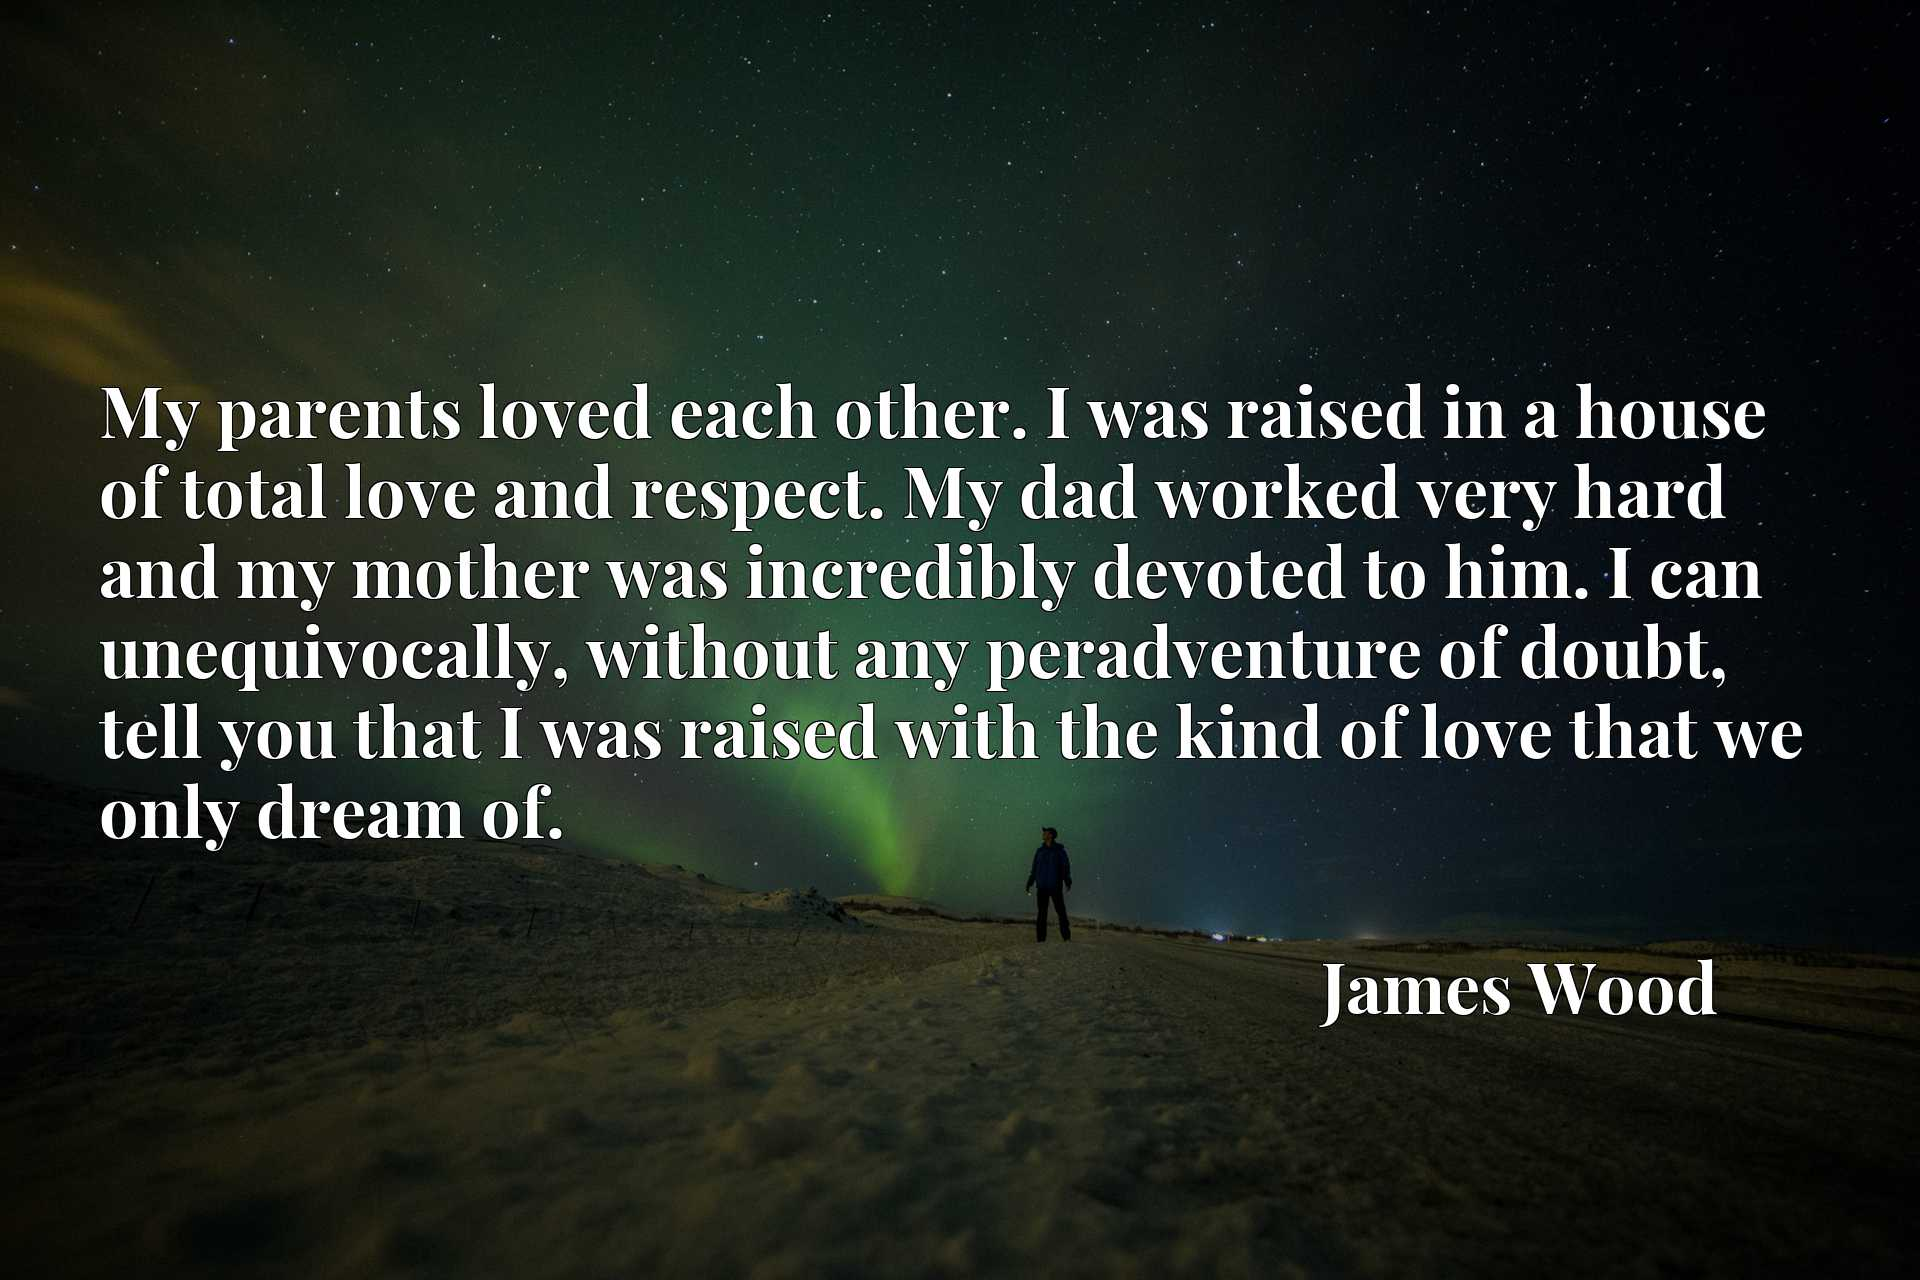 My parents loved each other. I was raised in a house of total love and respect. My dad worked very hard and my mother was incredibly devoted to him. I can unequivocally, without any peradventure of doubt, tell you that I was raised with the kind of love that we only dream of.